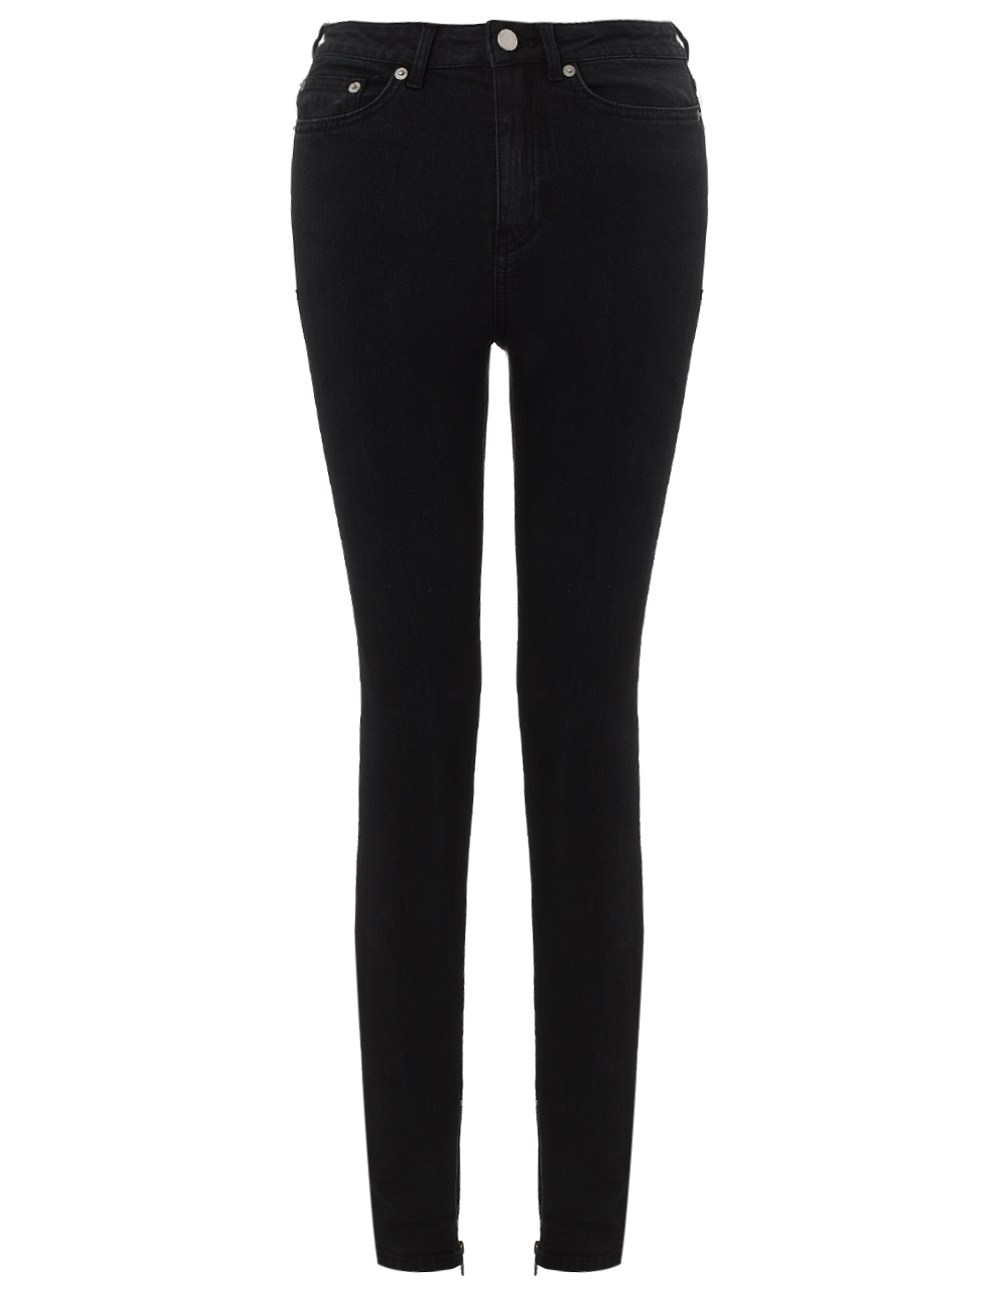 These skinny jeans also look great with your graphic t-shirt of choice and a pair of chucks. For a dressy appearance, pair black skinny jeans with a blouse, elaborate jewelry, and pretty heels or ballet flats.